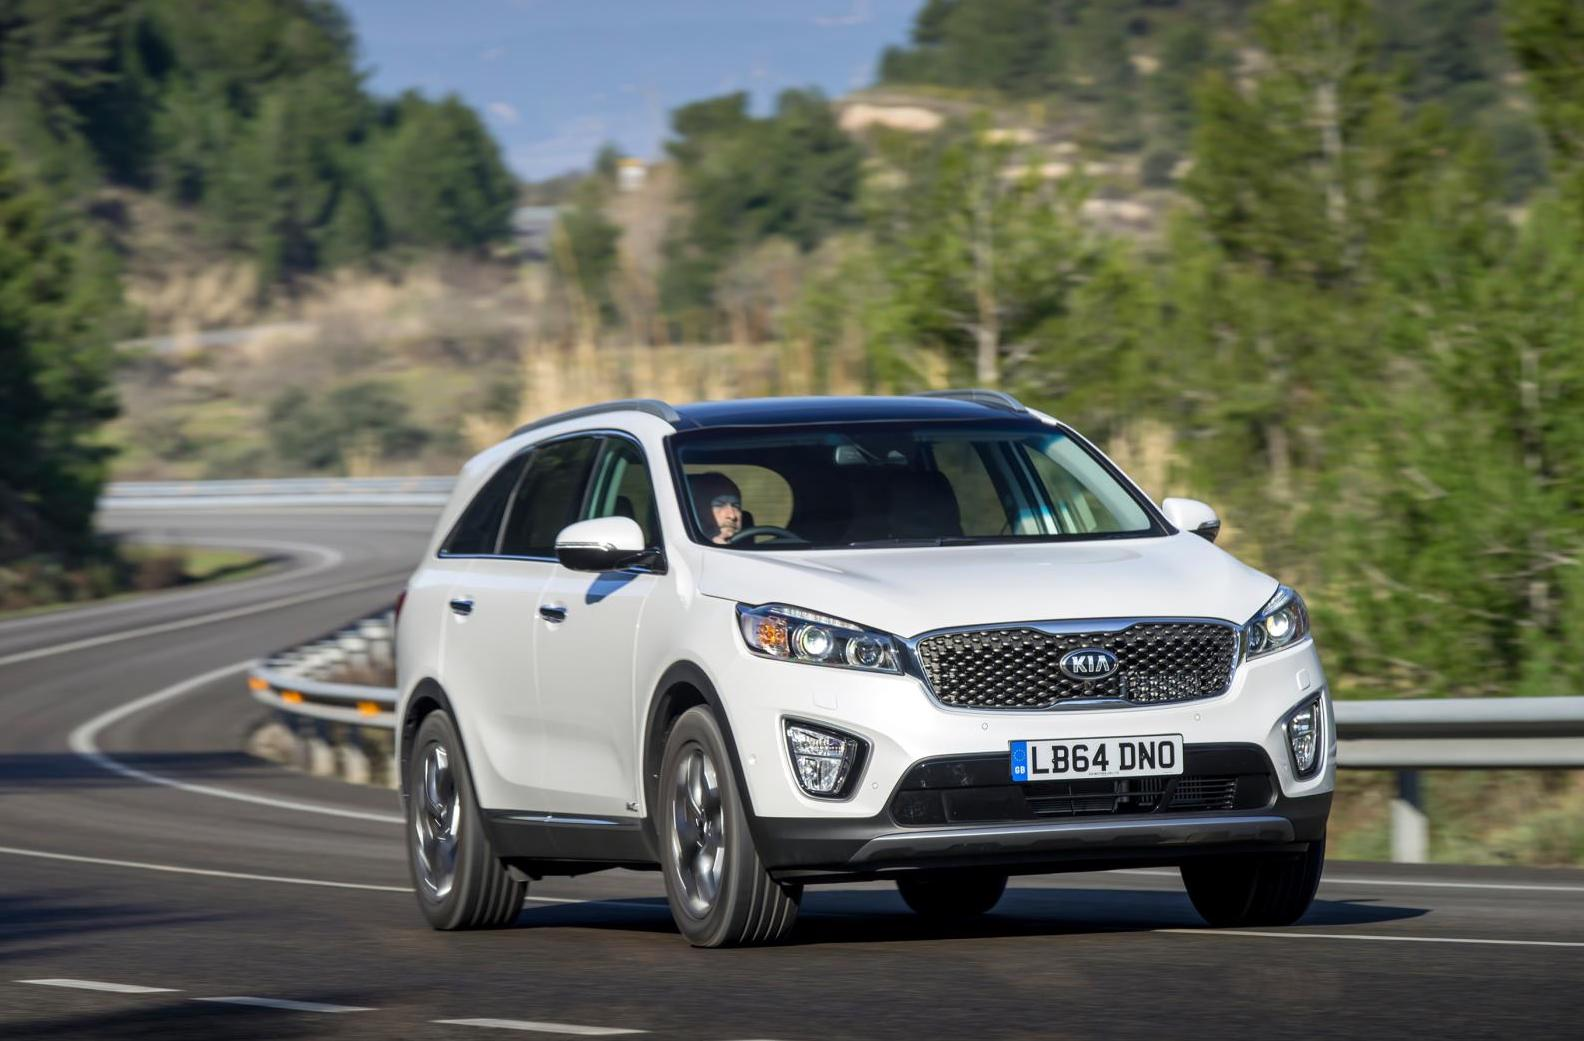 Kia Sorento driving on a road